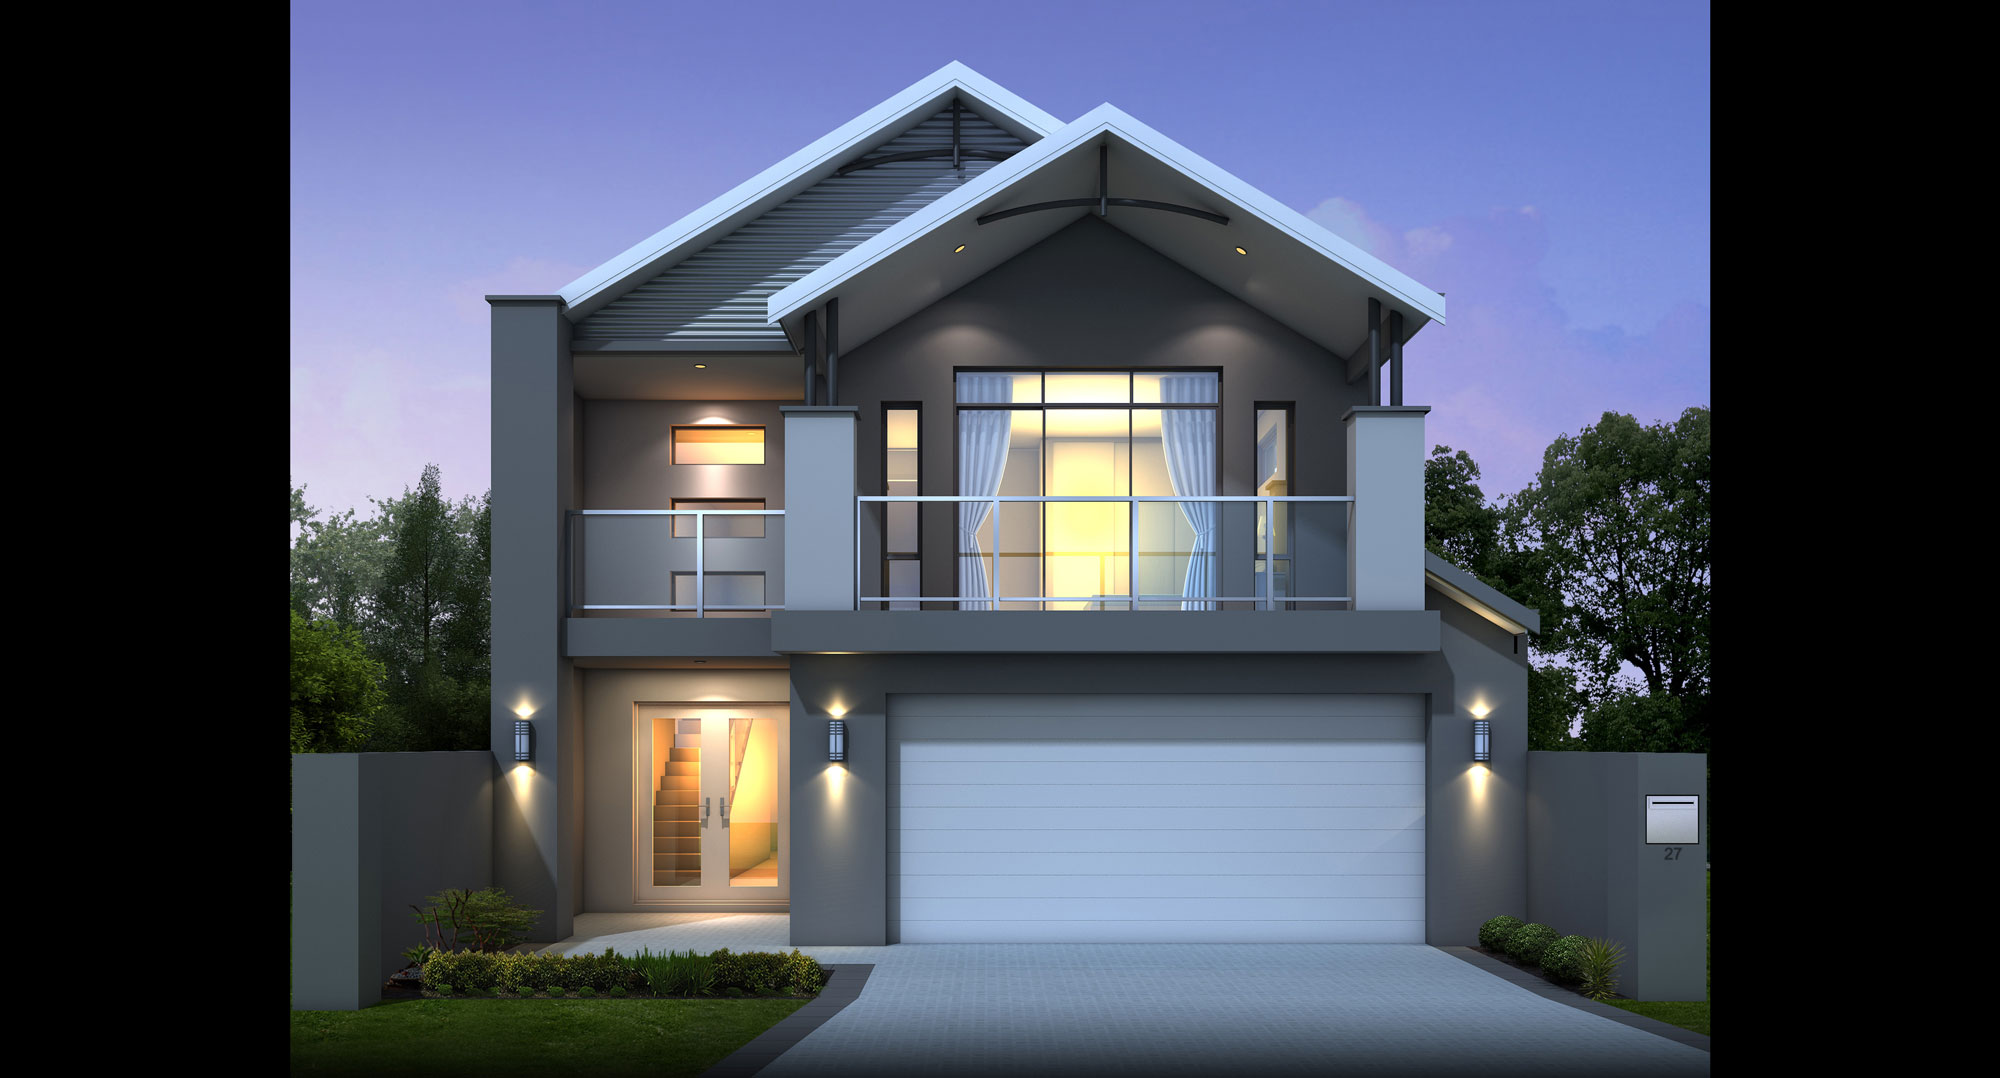 Narrow lot homes perth display houses designs great for Narrow home designs